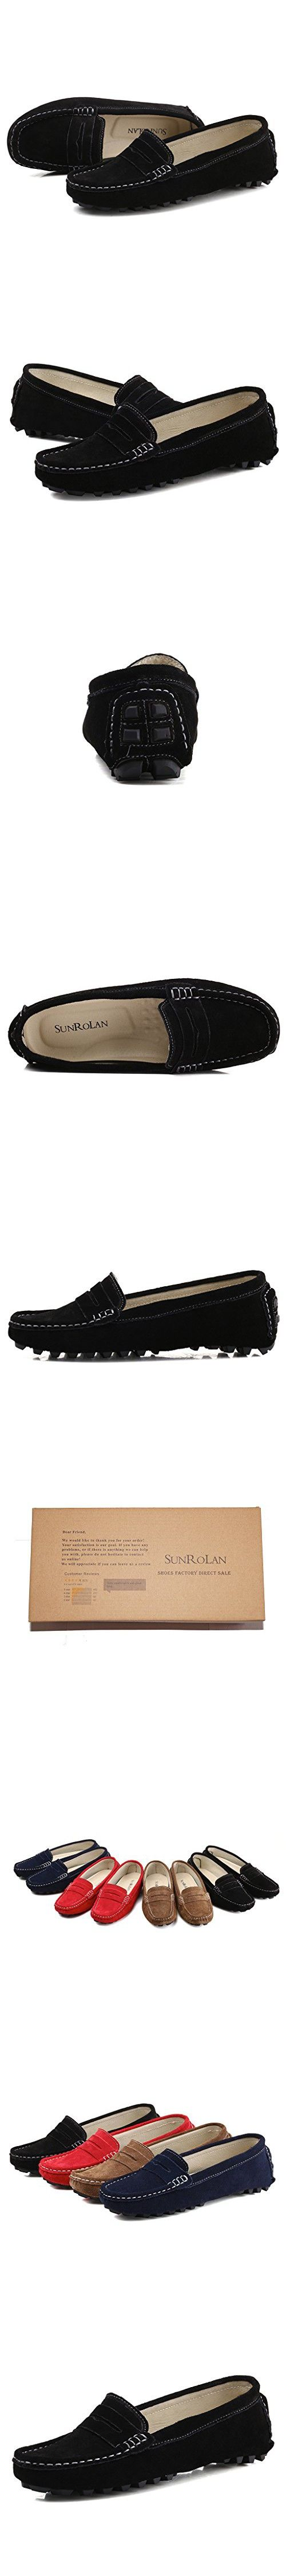 808-2hei10 SUNROLAN Rebacca Women's Suede Leather Driving Moccasins Slip-On Penny Loafers Boat Shoes Flats Black 10 B(M) US